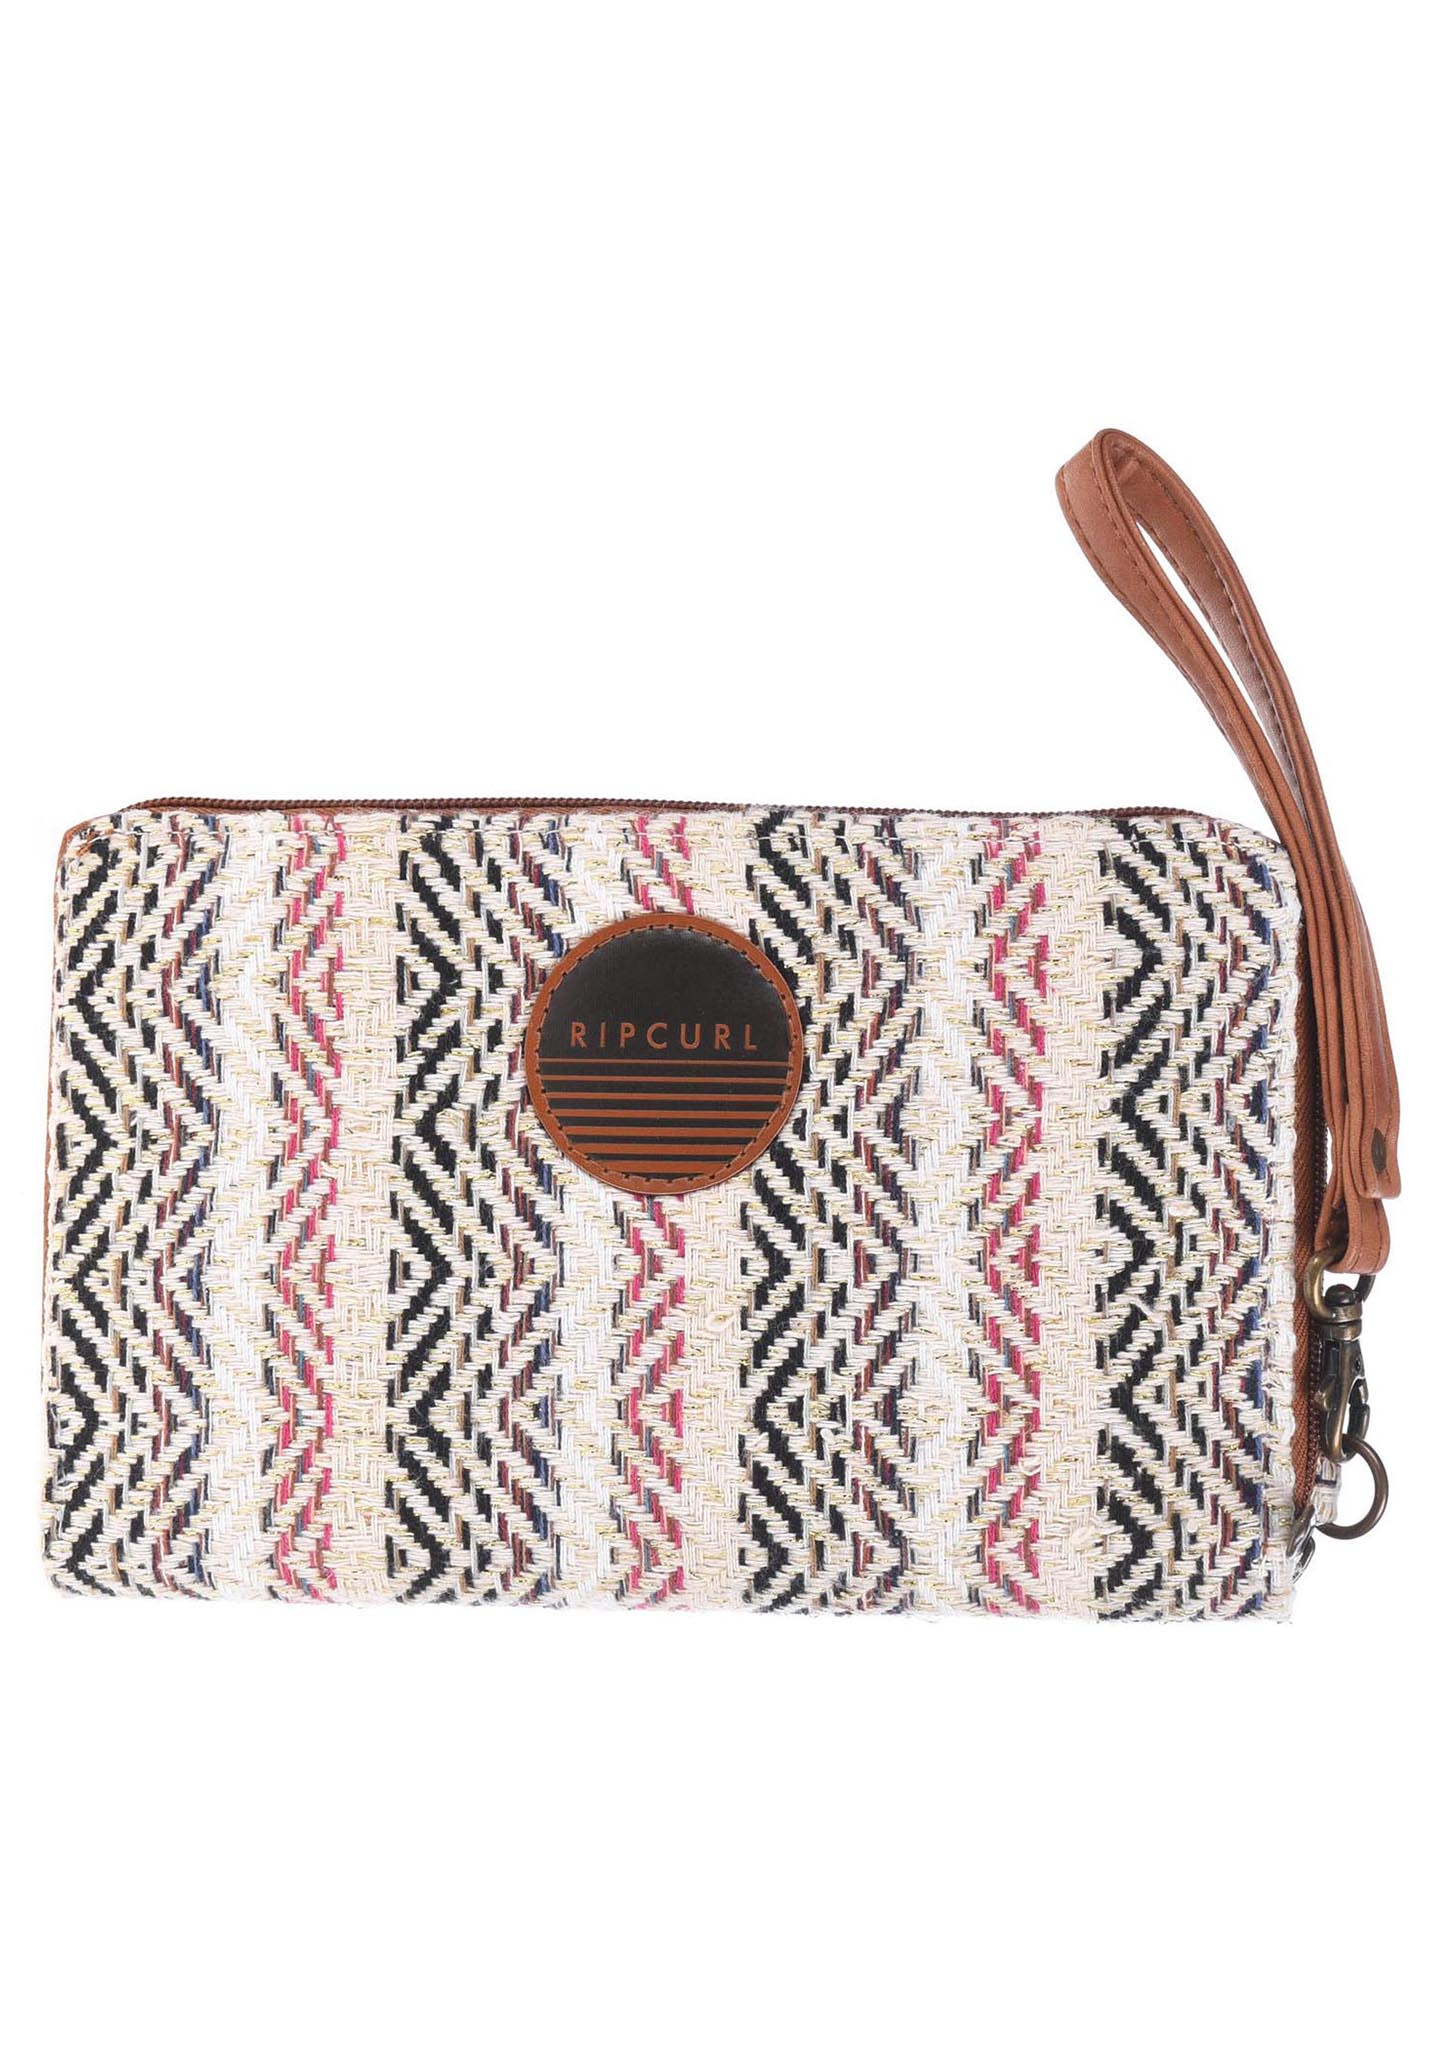 Rip Curl Portemonnee.Rip Curl Lima Oversized Wallet For Women Beige Planet Sports